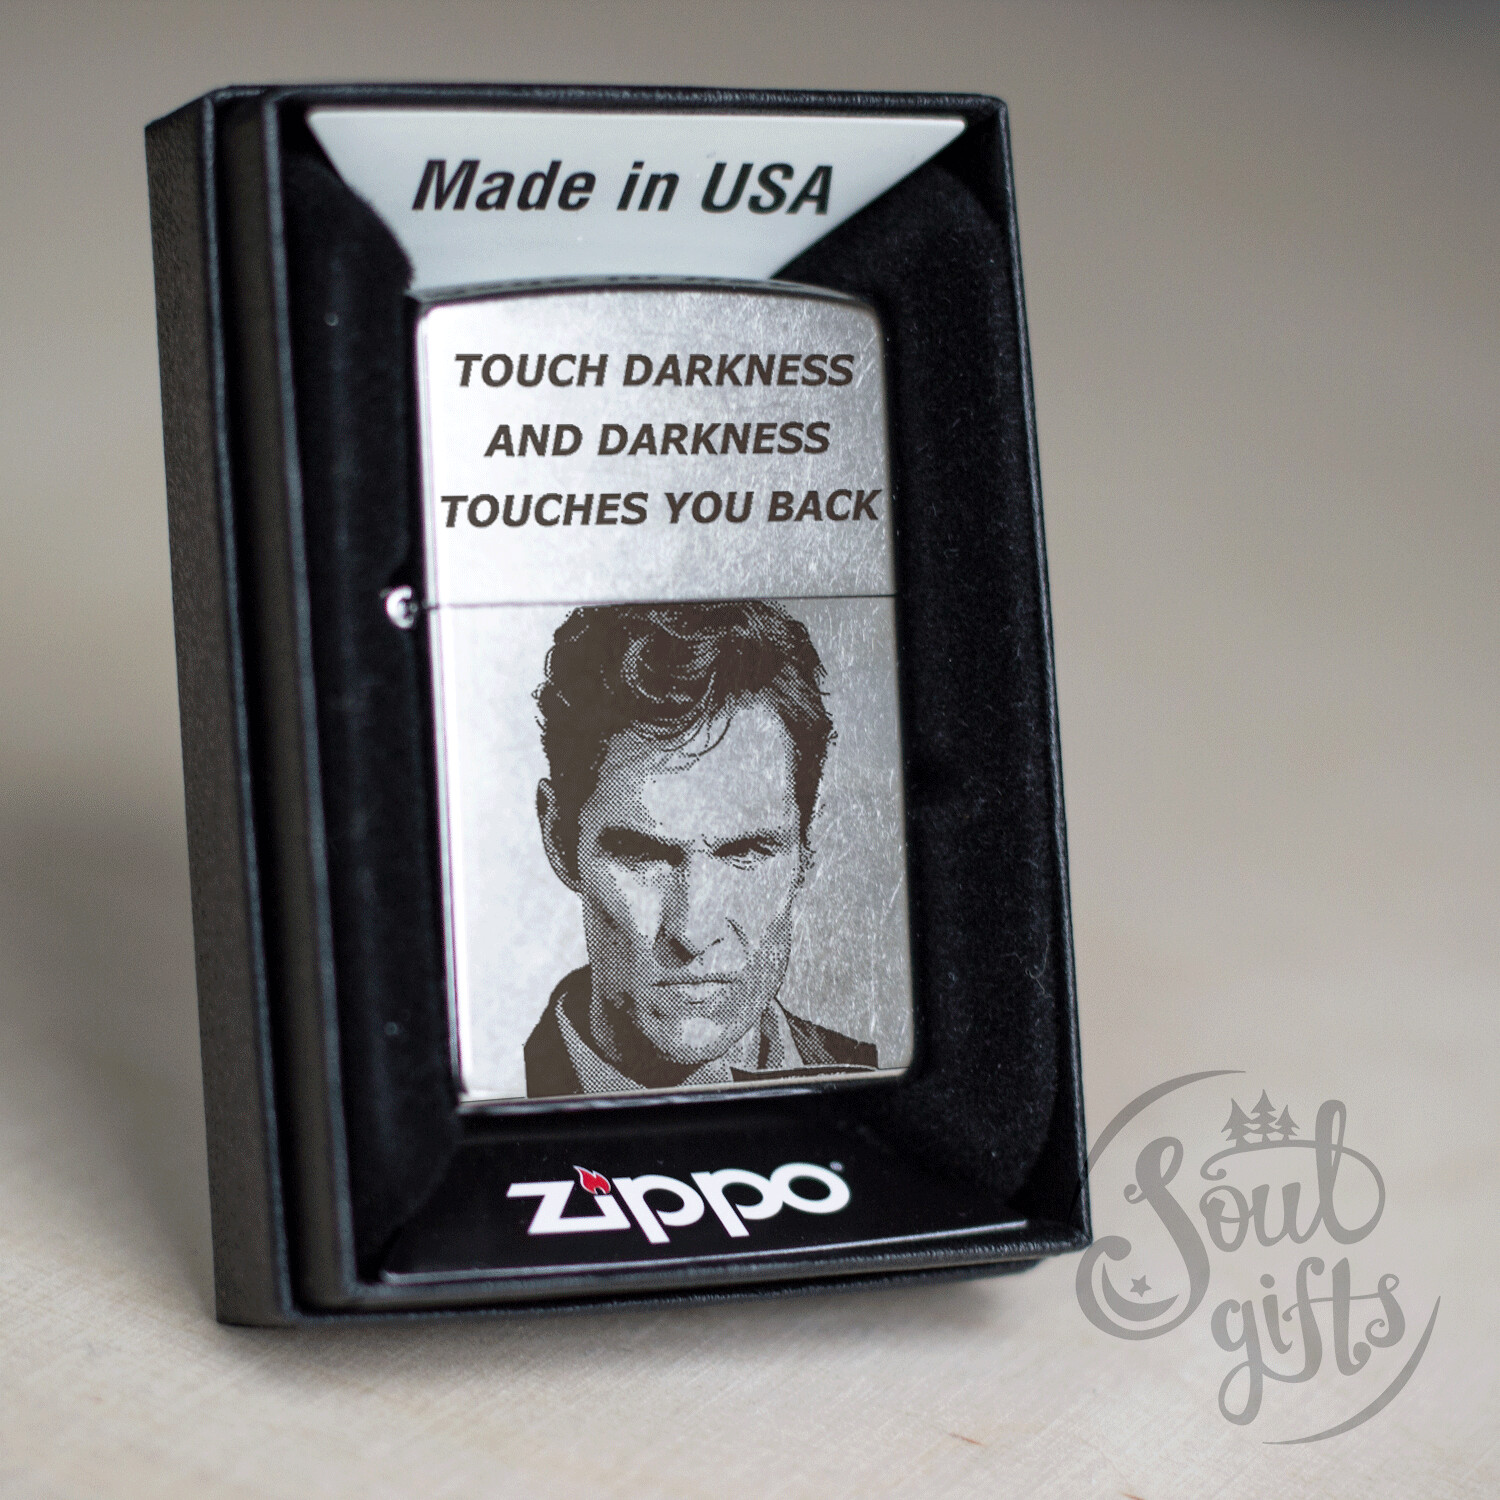 True detective custom Zippo 207 lighter / Matthew McConaughey